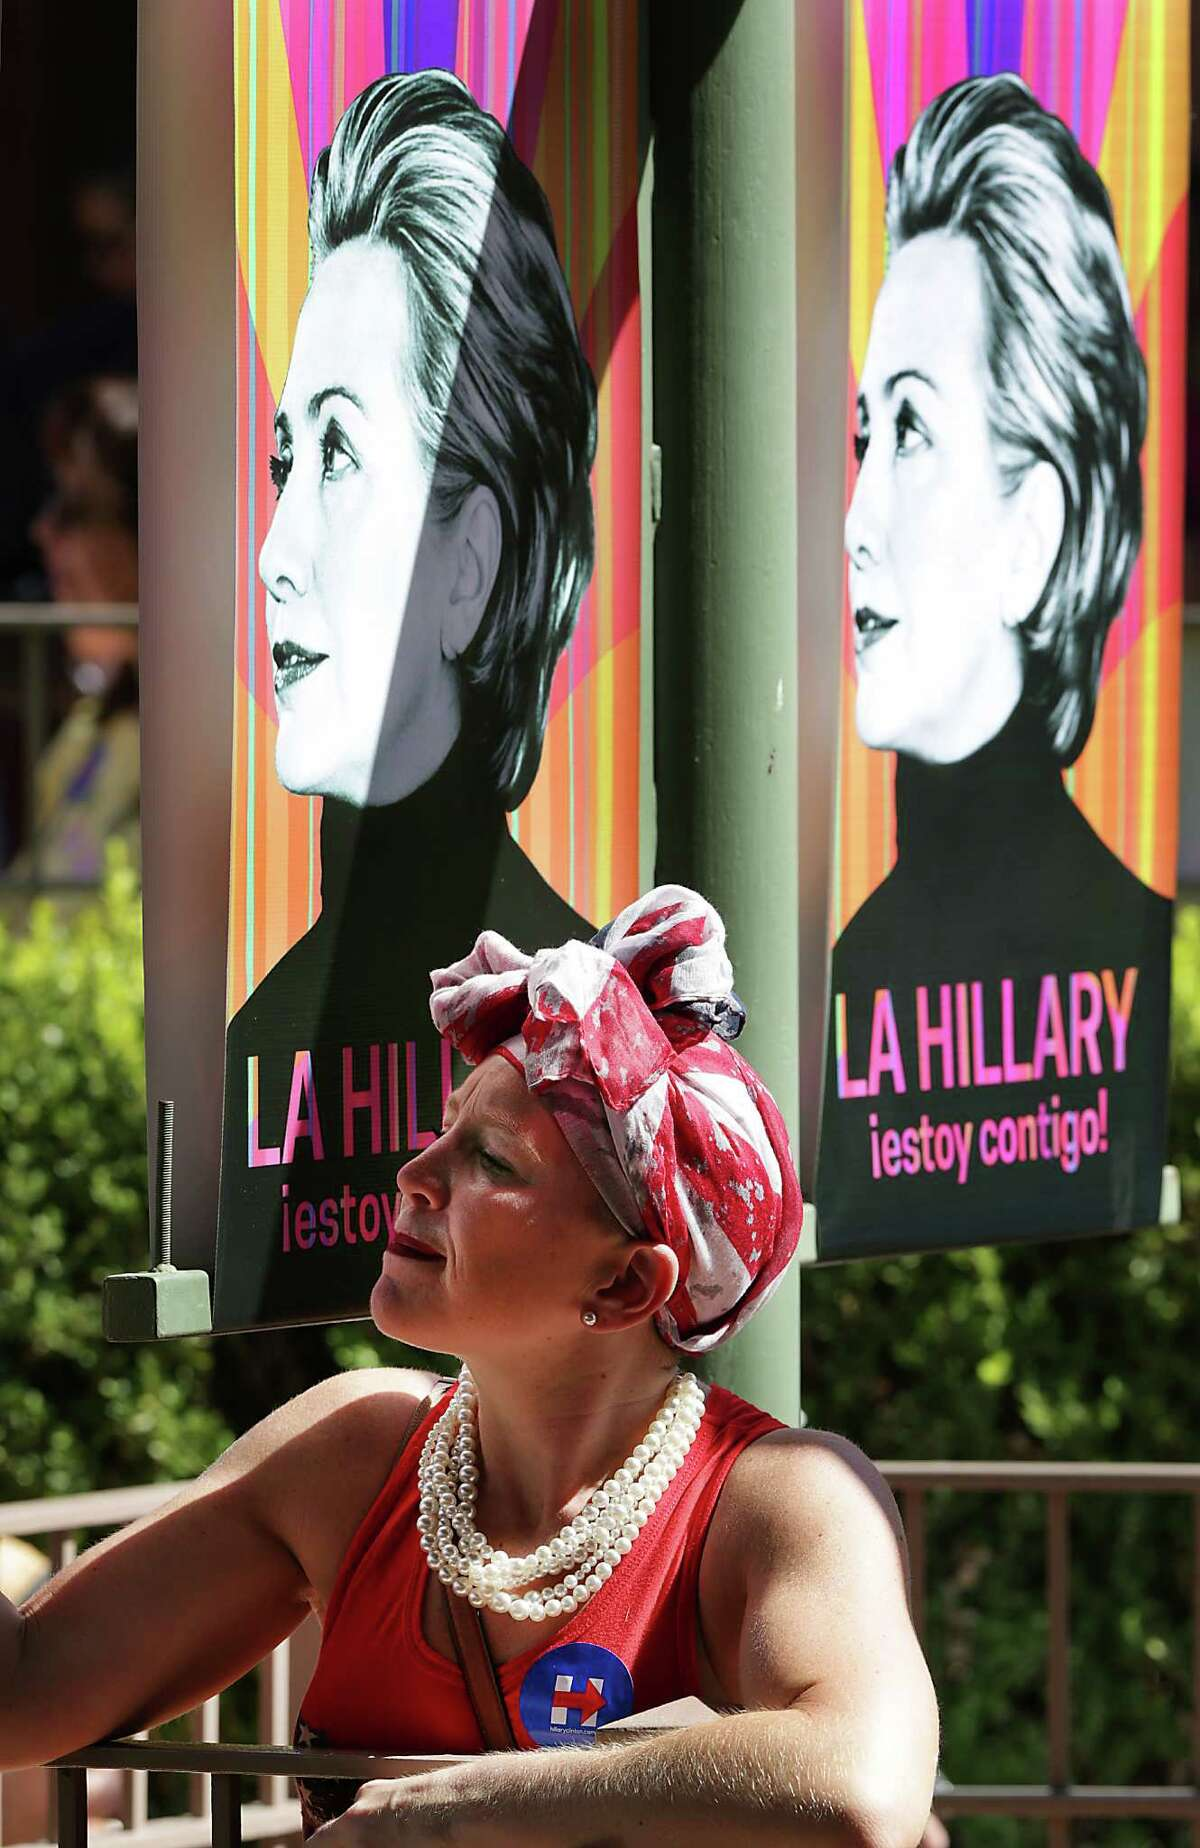 A supporter for Presidential candidate Hillary Clinton waits for the rally to begin on Thursday, Oct. 15, 2015 at Sunset Station in San Antonio.